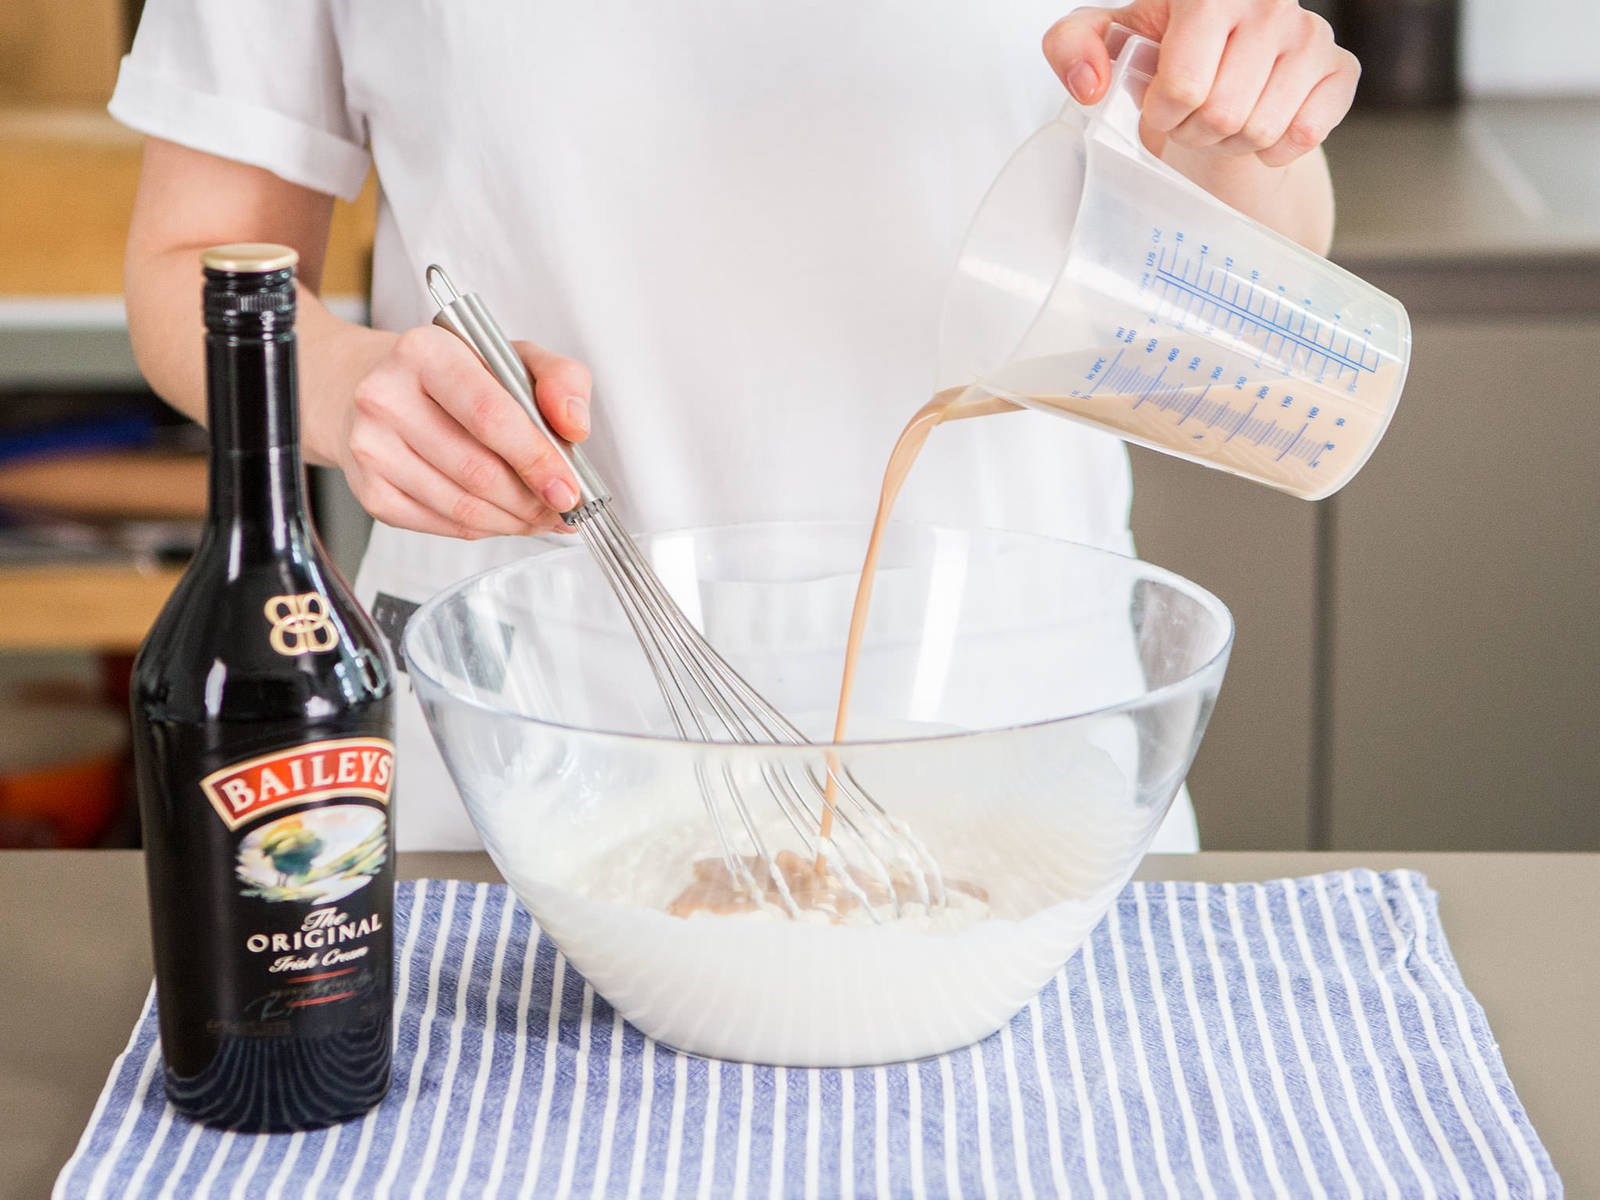 In a large bowl, mix together yogurt, cream cheese, and Baileys. Then, place gelatin mixture in a small saucepan with sugar and simmer over medium heat for approx. 2 – 3 min. until sugar is dissolved. Next, add gelatin mixture to yogurt and cream cheese mixture. Stir well to combine.